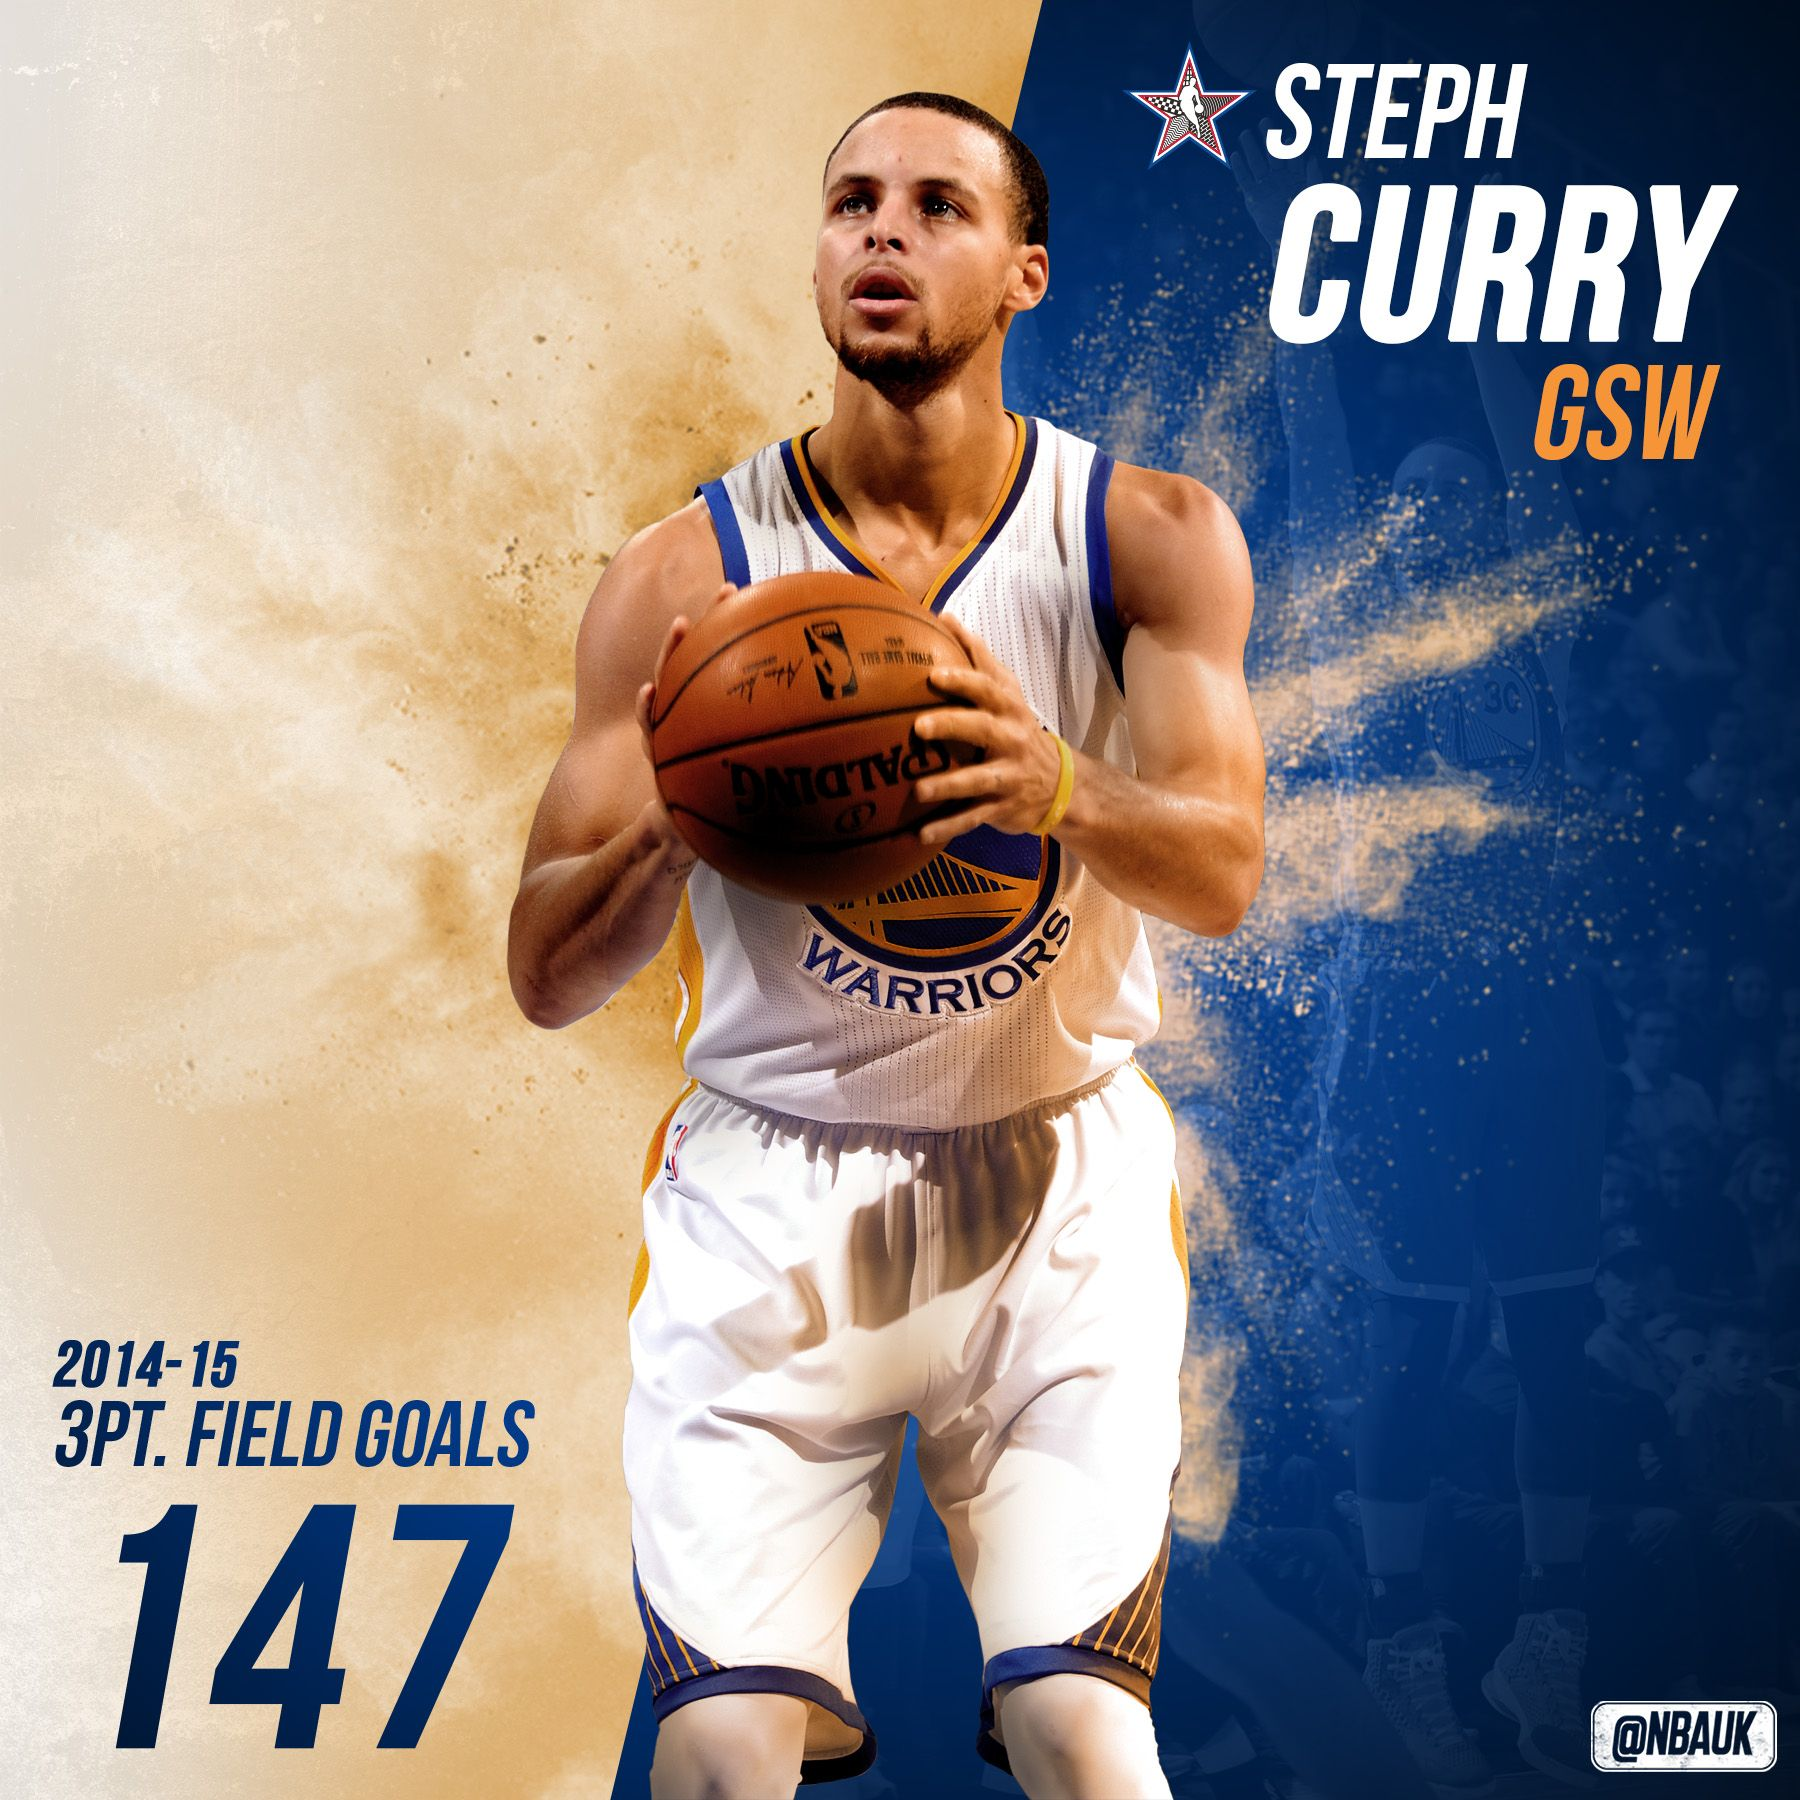 Golden State Warriors Record Without Steph Curry: Stephen Curry Field Goal Stats Before NBA All-Star 3 Point